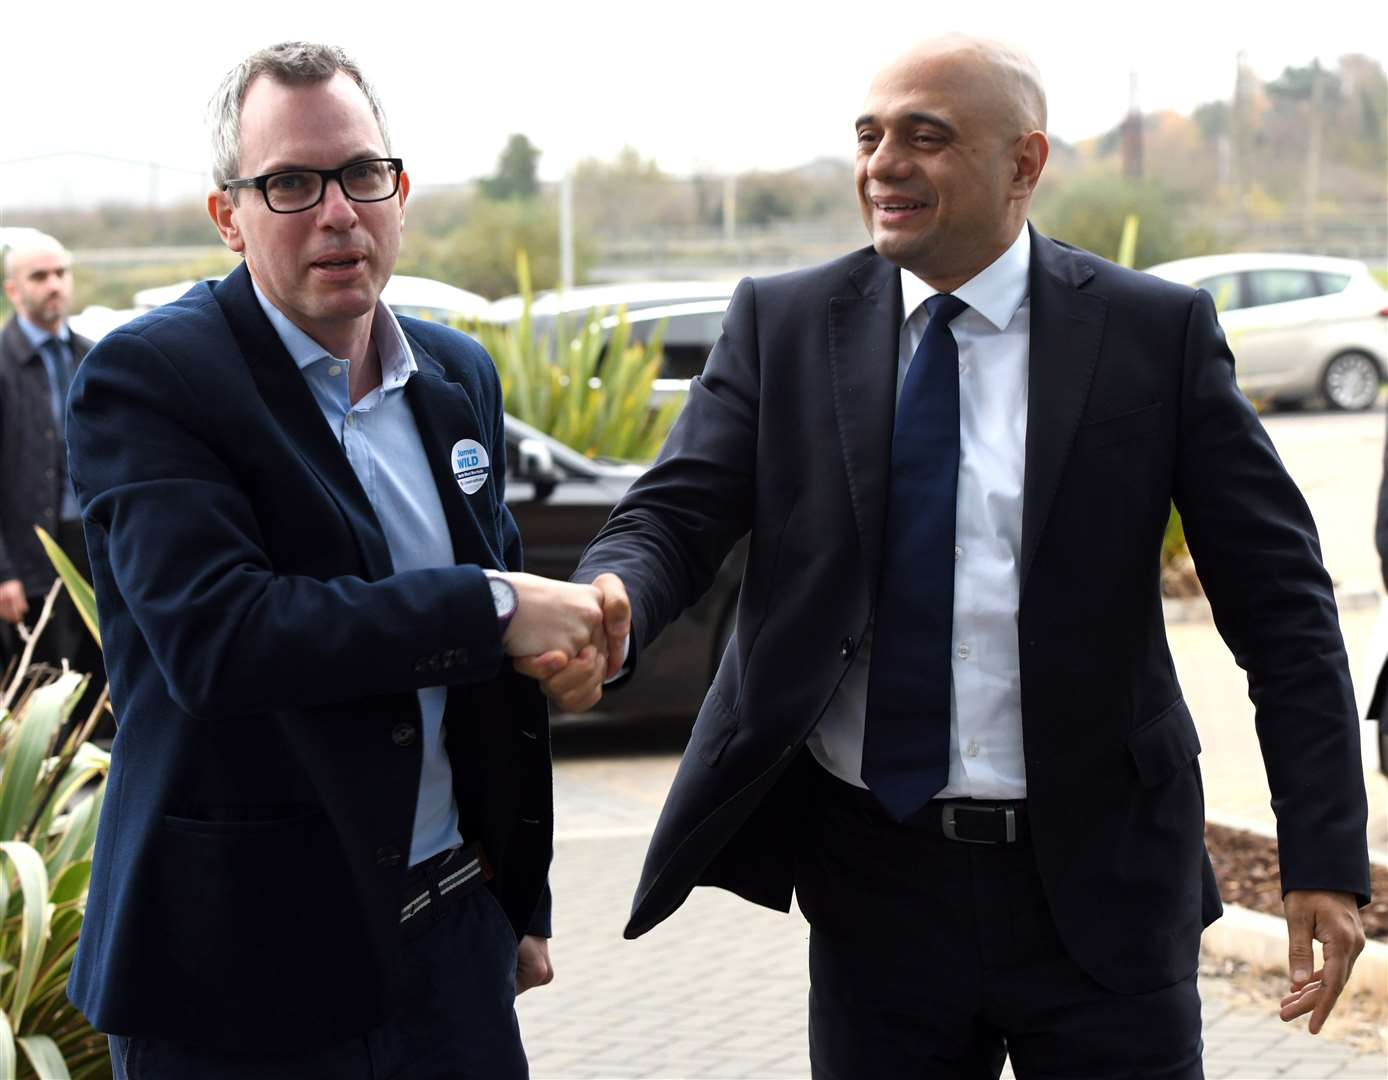 The new Health Secretary Sajid Javid, seen here with MP James Wild during a visit to King's Lynn in 2019, has been invited to visit the QEH.